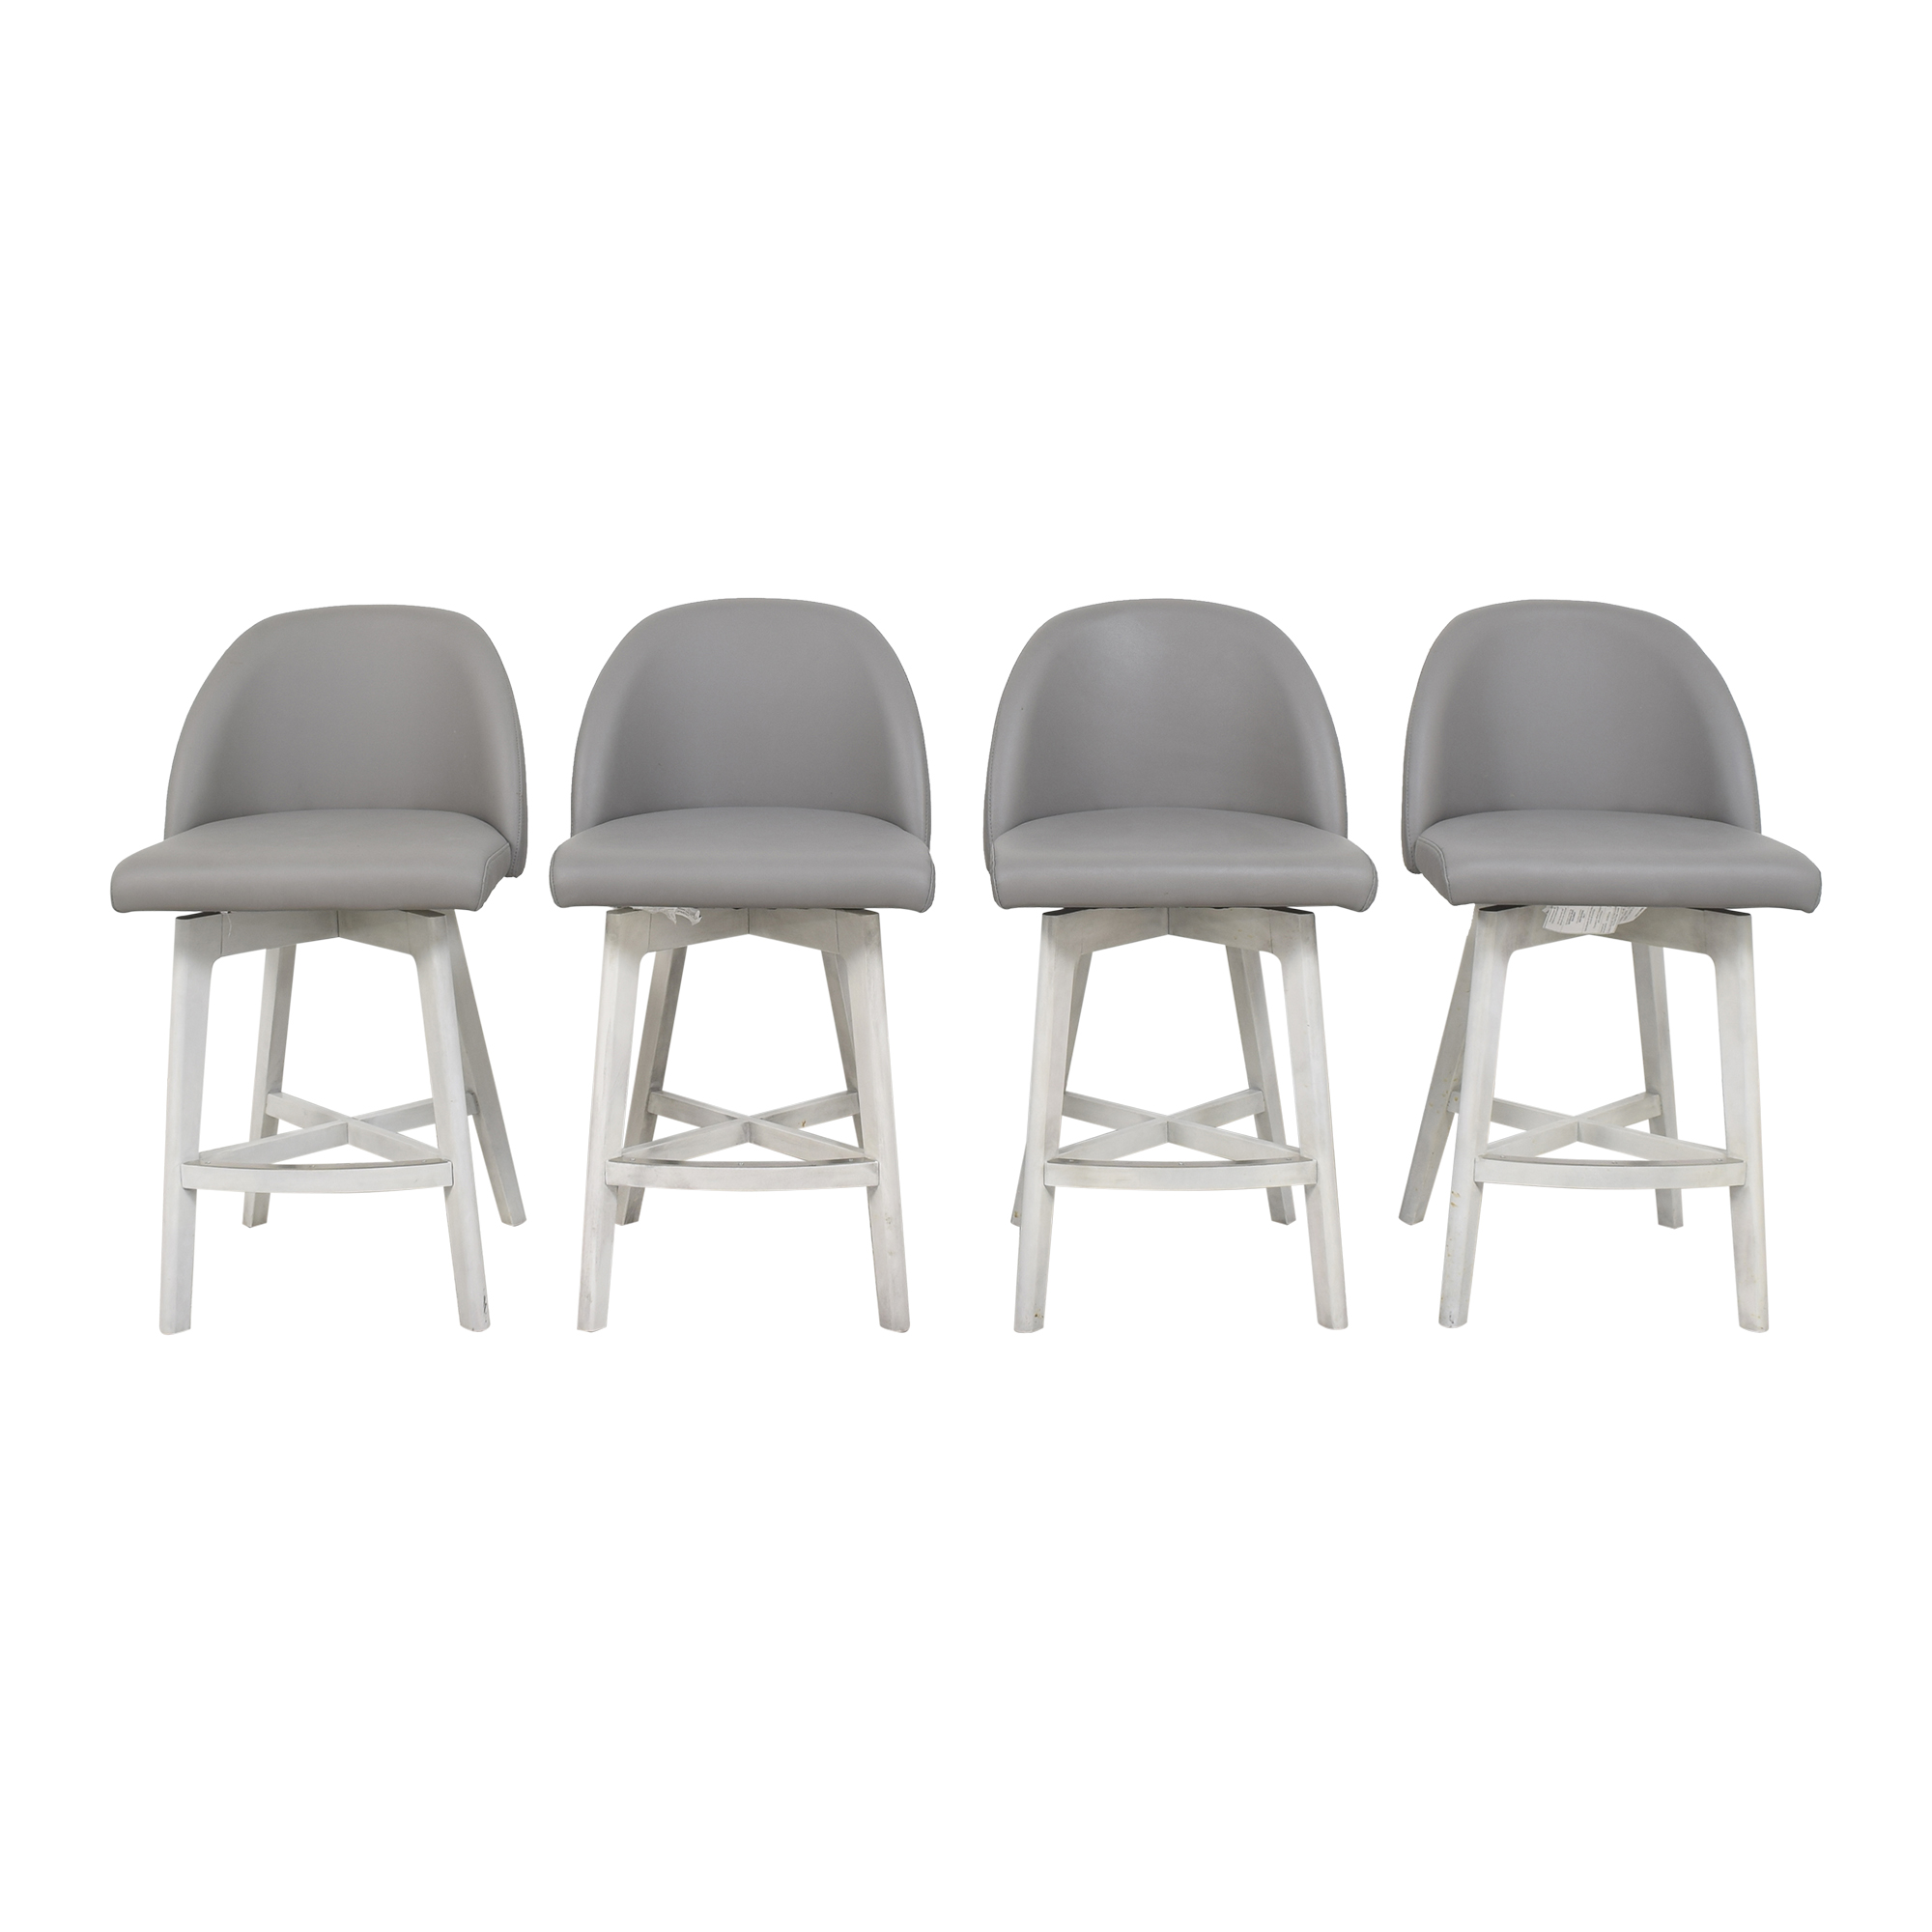 Canadel Canadel Downtown Counter Stools for sale